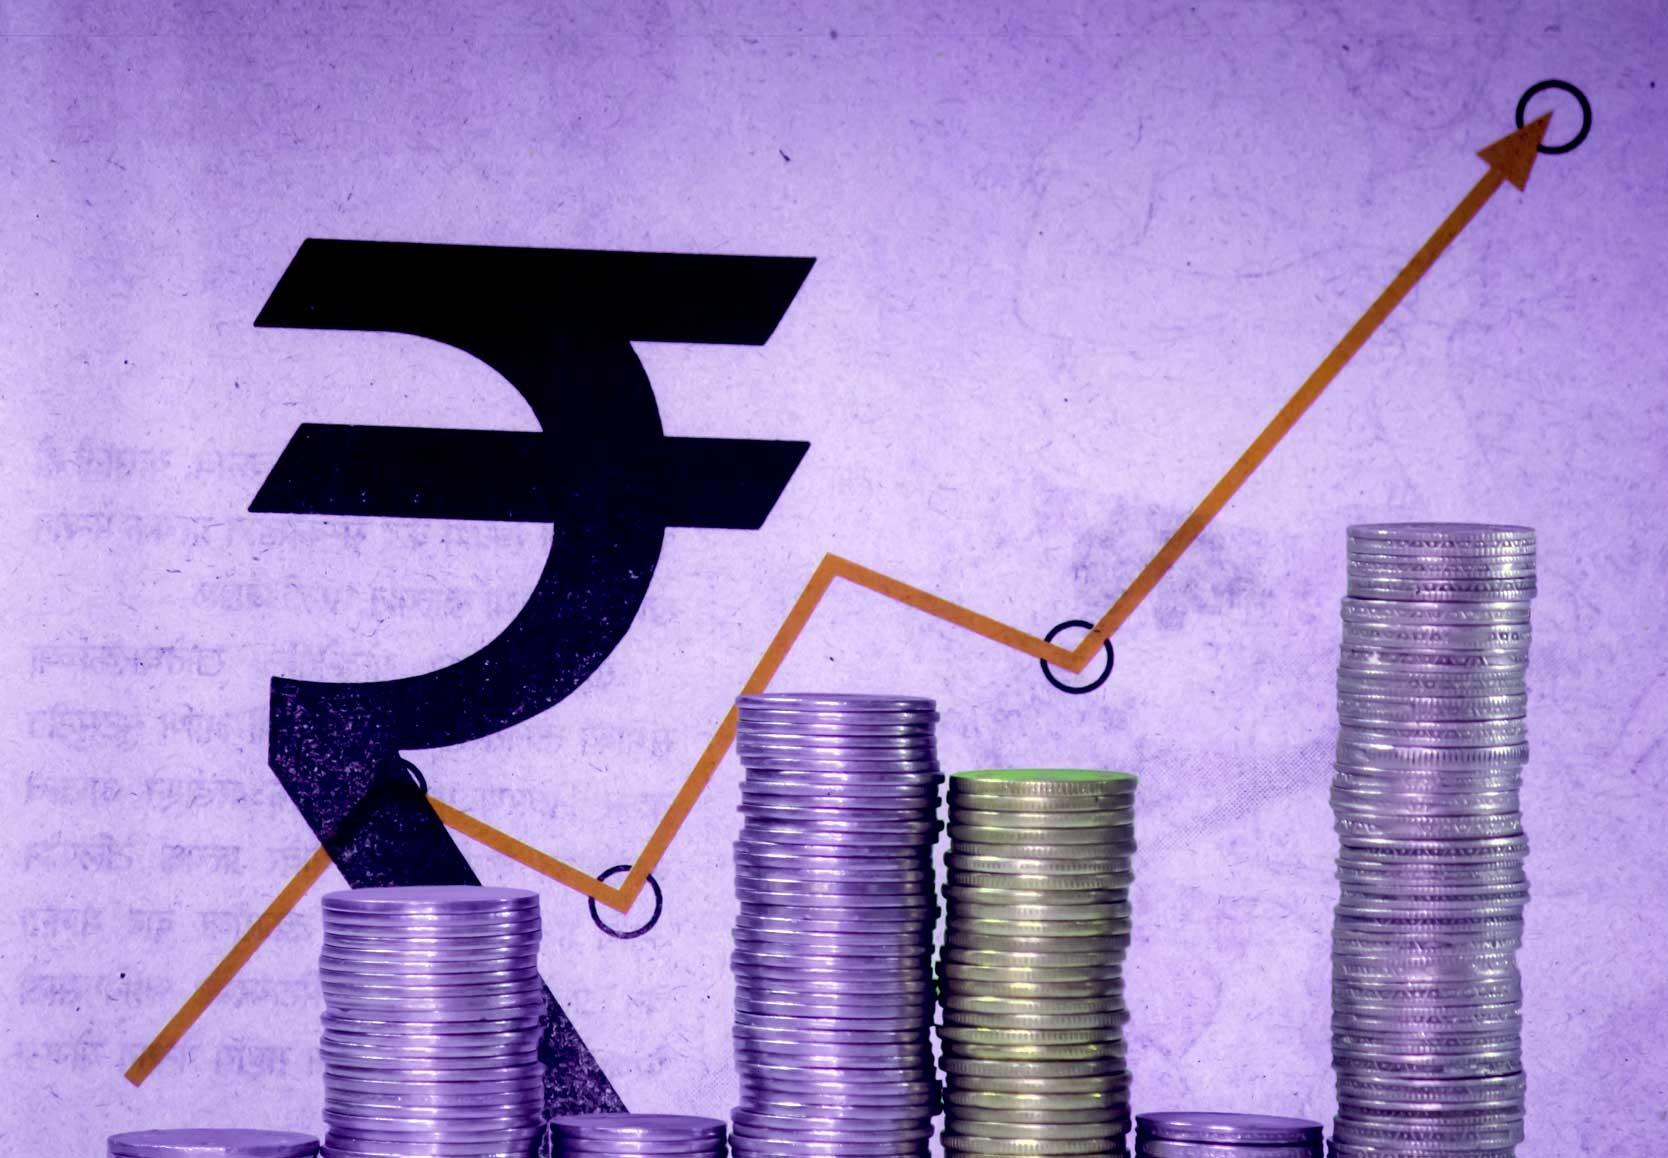 Indian economy grows 7.2% in Q3